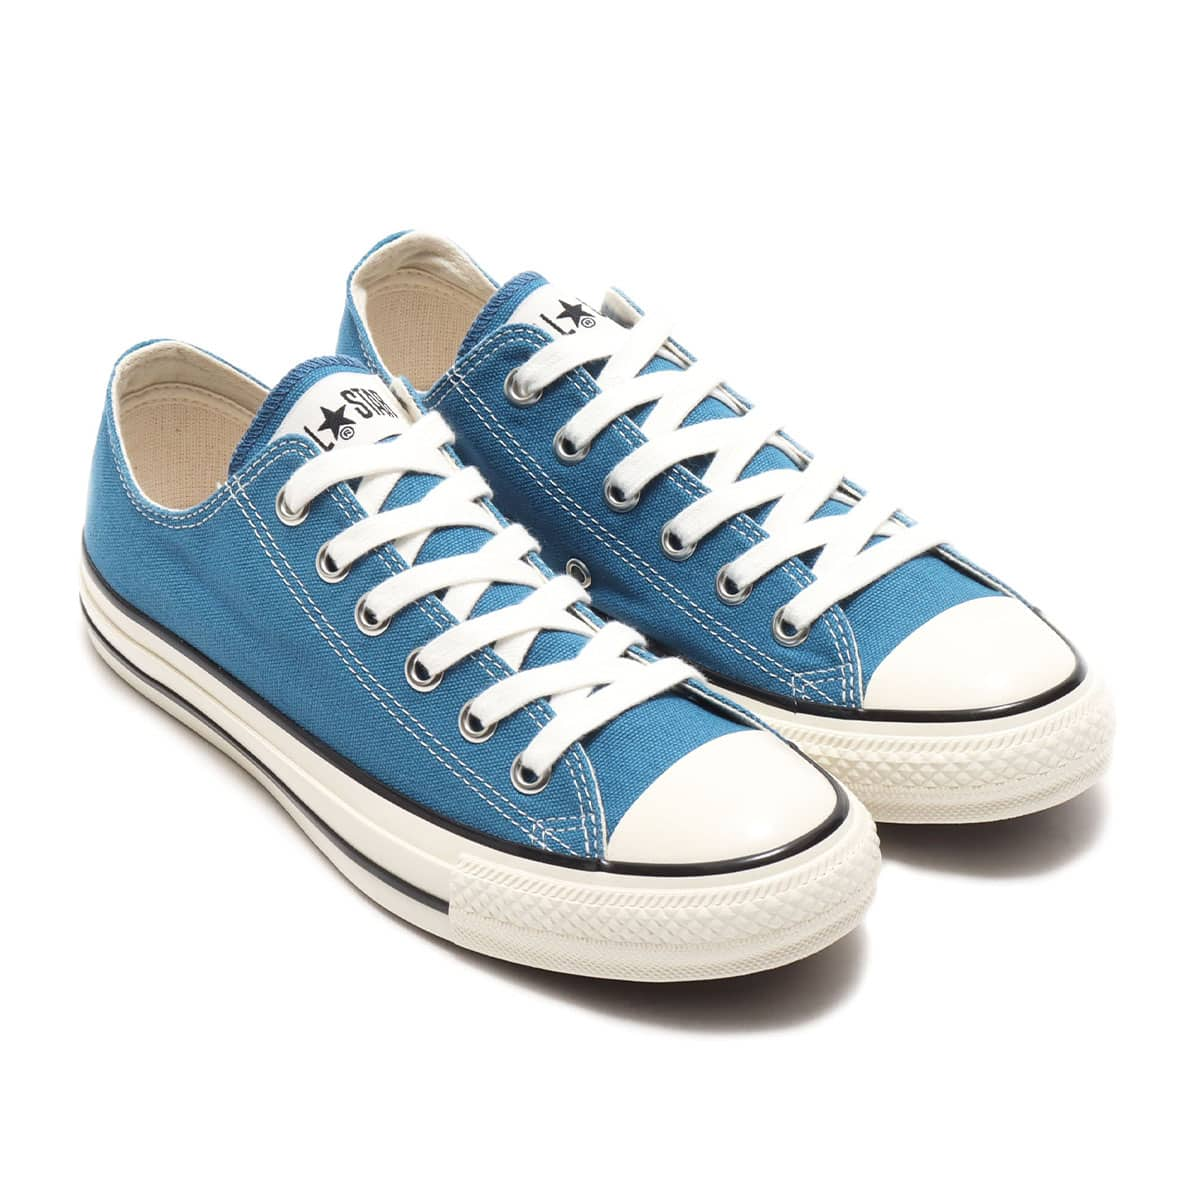 CONVERSE ALL STAR US COLORS OX CARIBBEANBLUE 20FW-I_photo_large